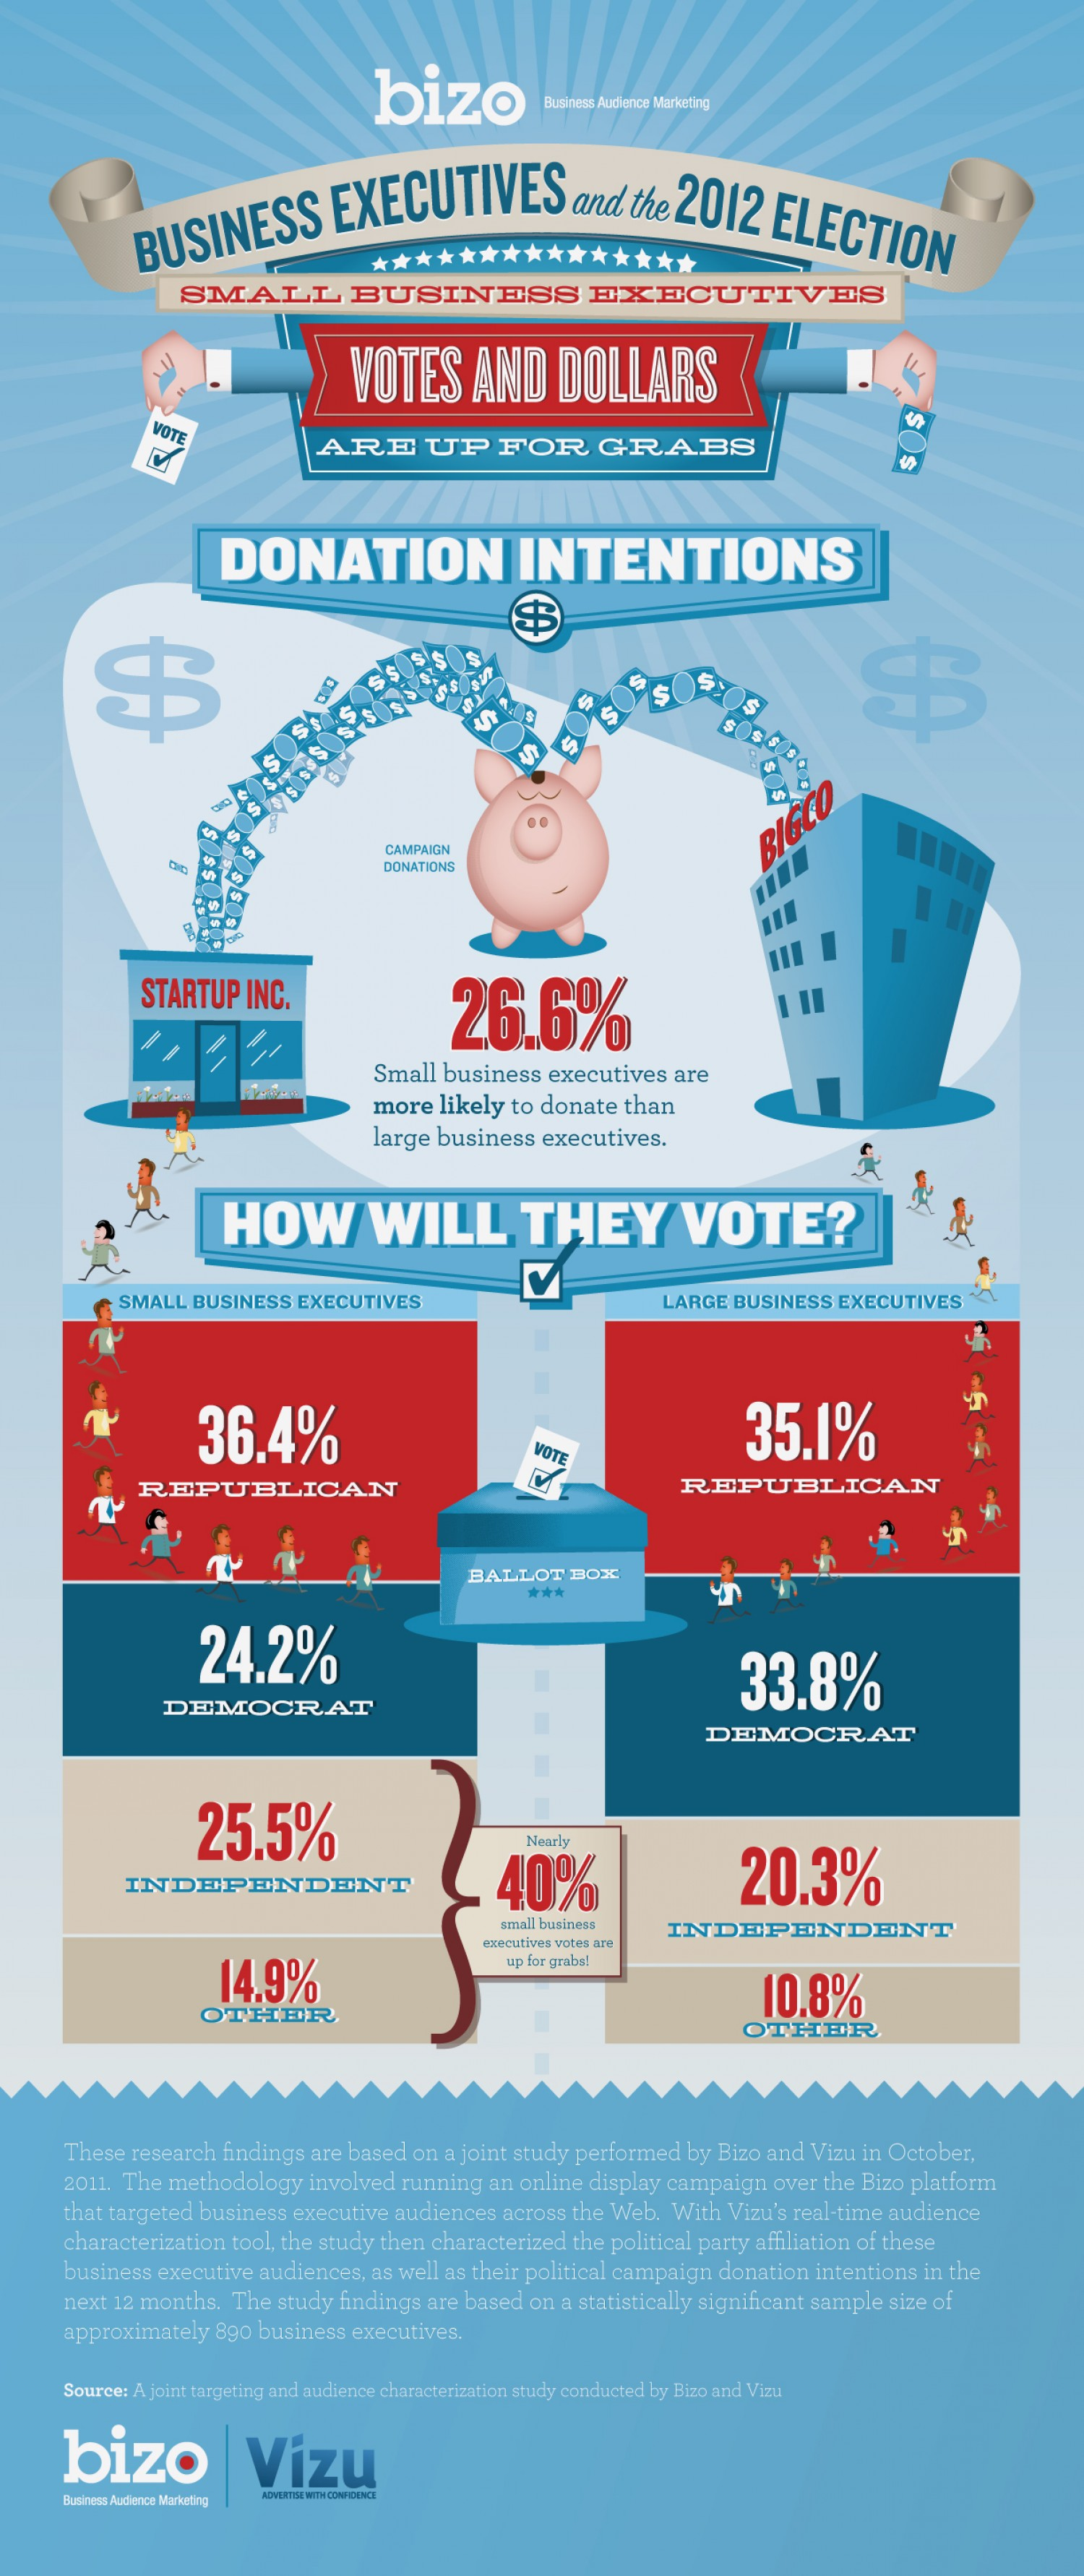 Business Executives and the 2012 Election